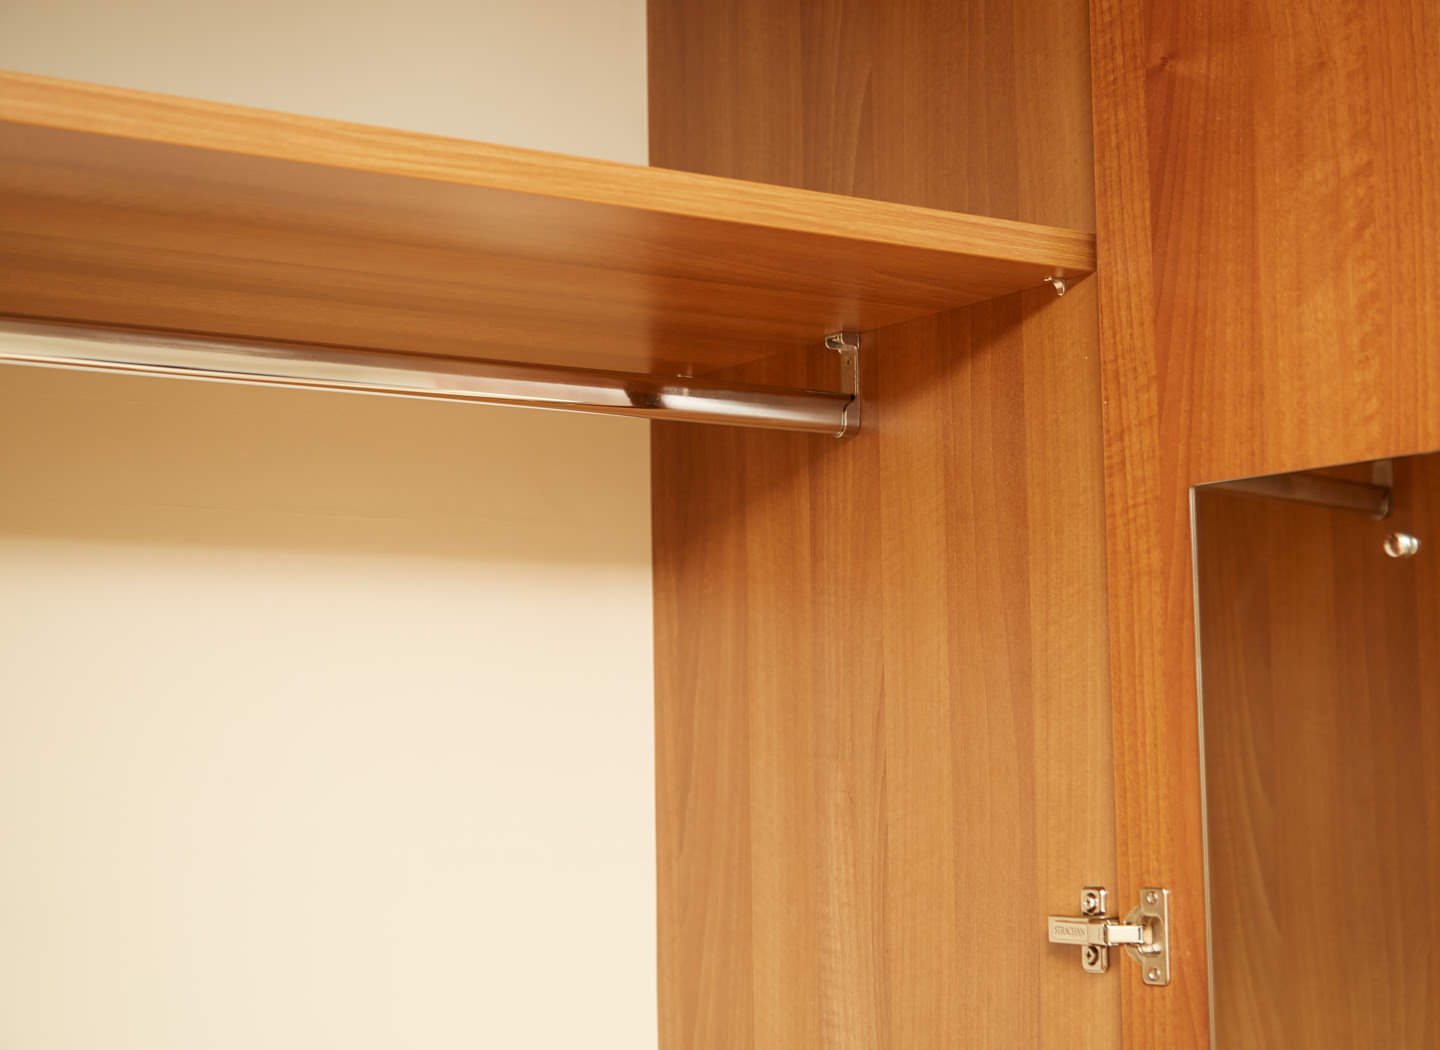 Case study showing wardrobe hanging space